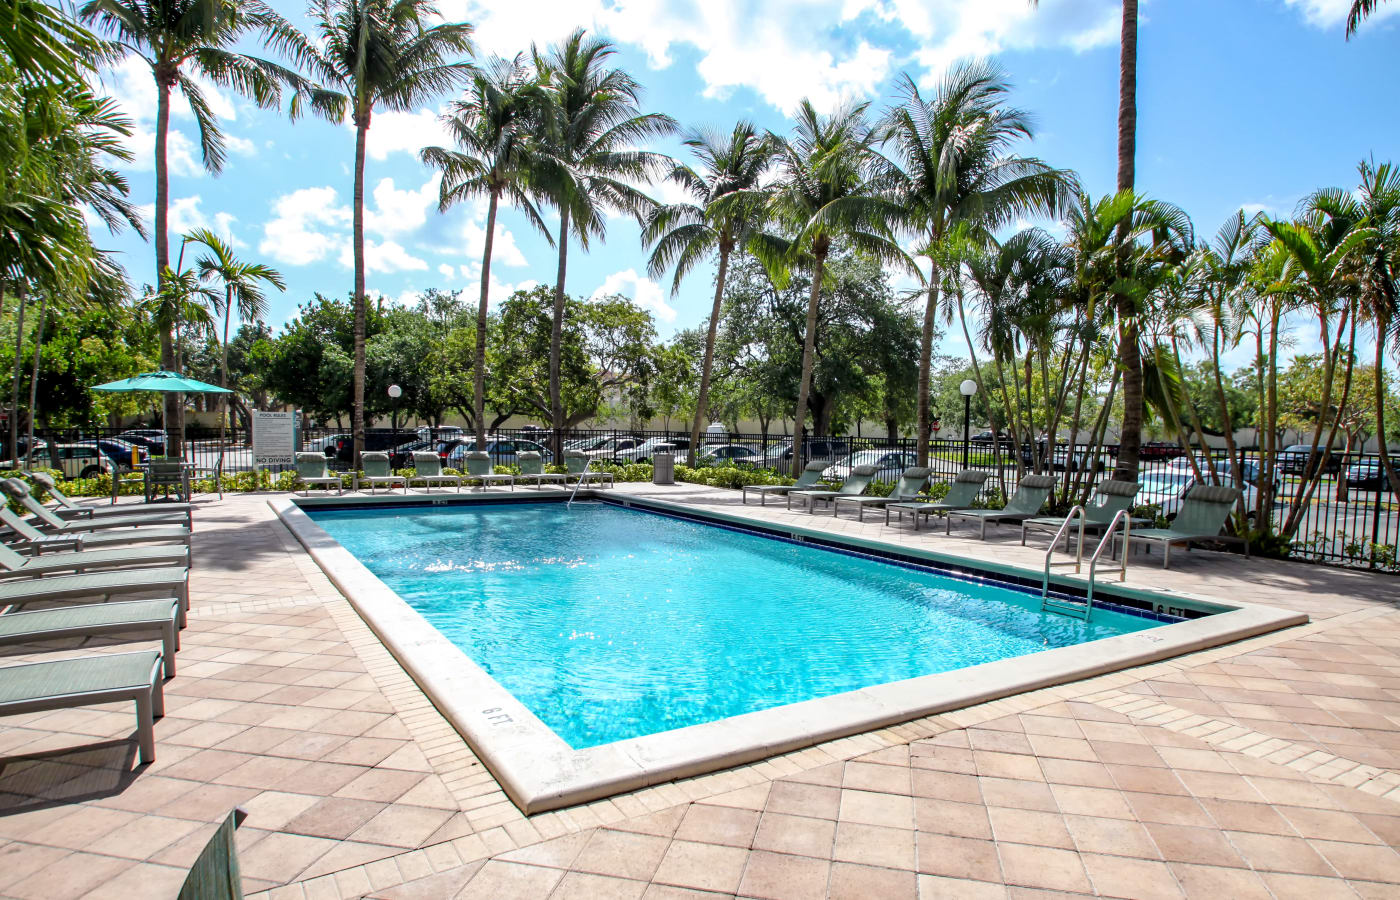 Beautiful sparkling swimming pool at Aliro in North Miami, Florida